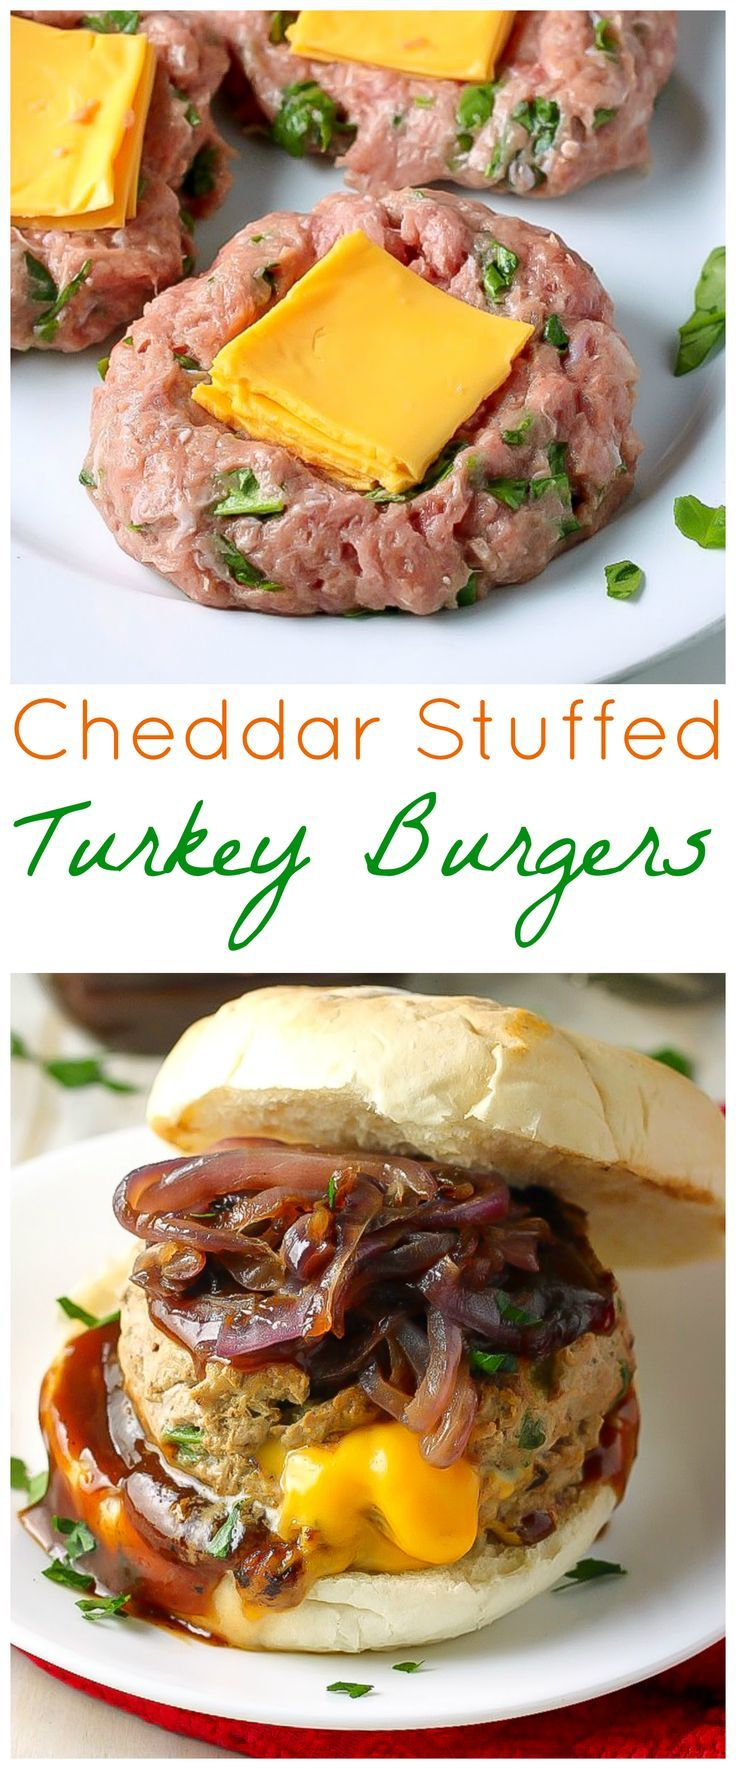 Cheddar Stuffed BBQ Turkey Burgers.